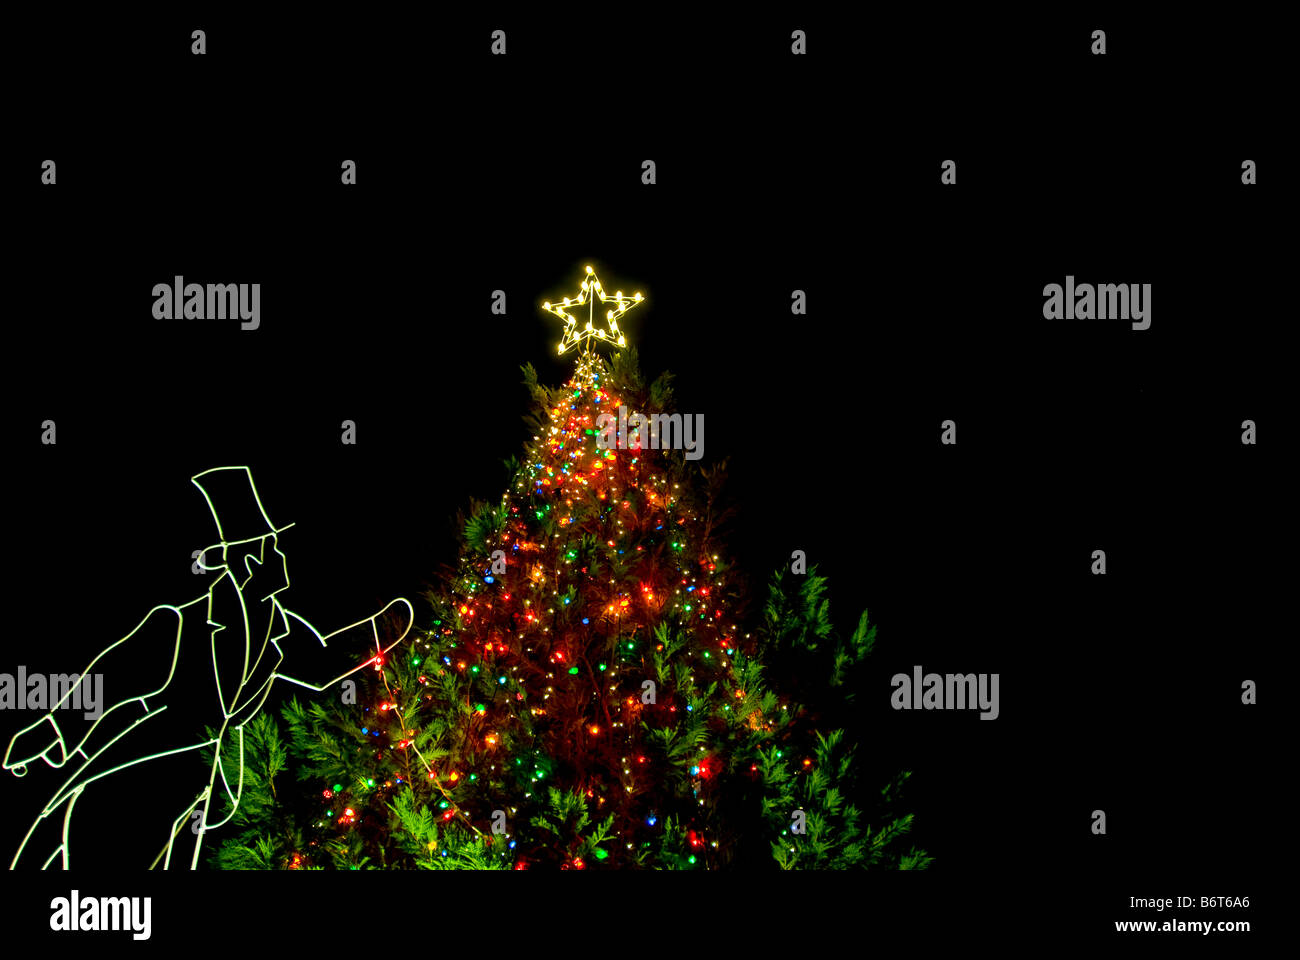 Christmas tree lights star at night figure in old fashioned clothes ...